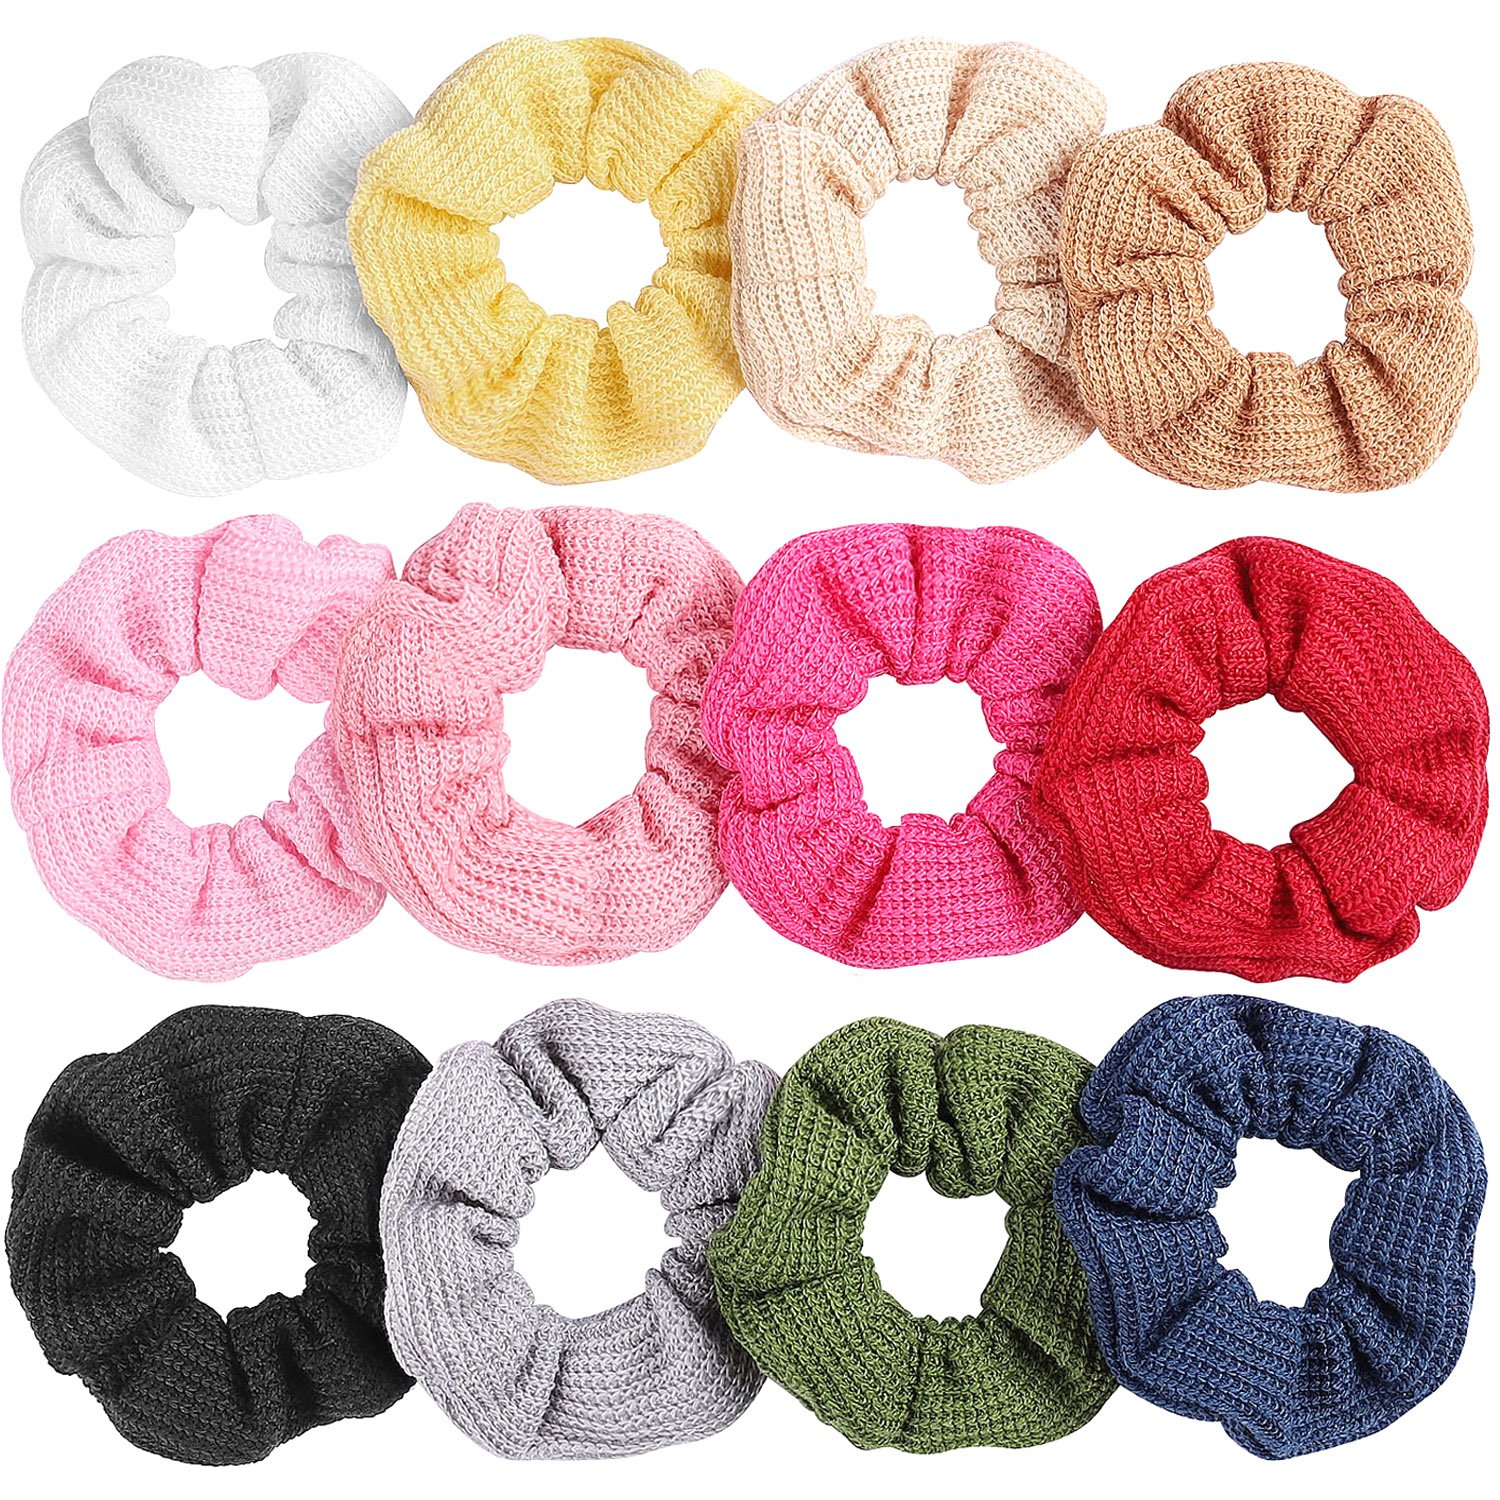 Whaline 12 Colors Hair Scrunchies Knit Elastic Hair Bobbles Hair Scrunchy Soft Ponytail Holder Hair Bands for Kids Adults